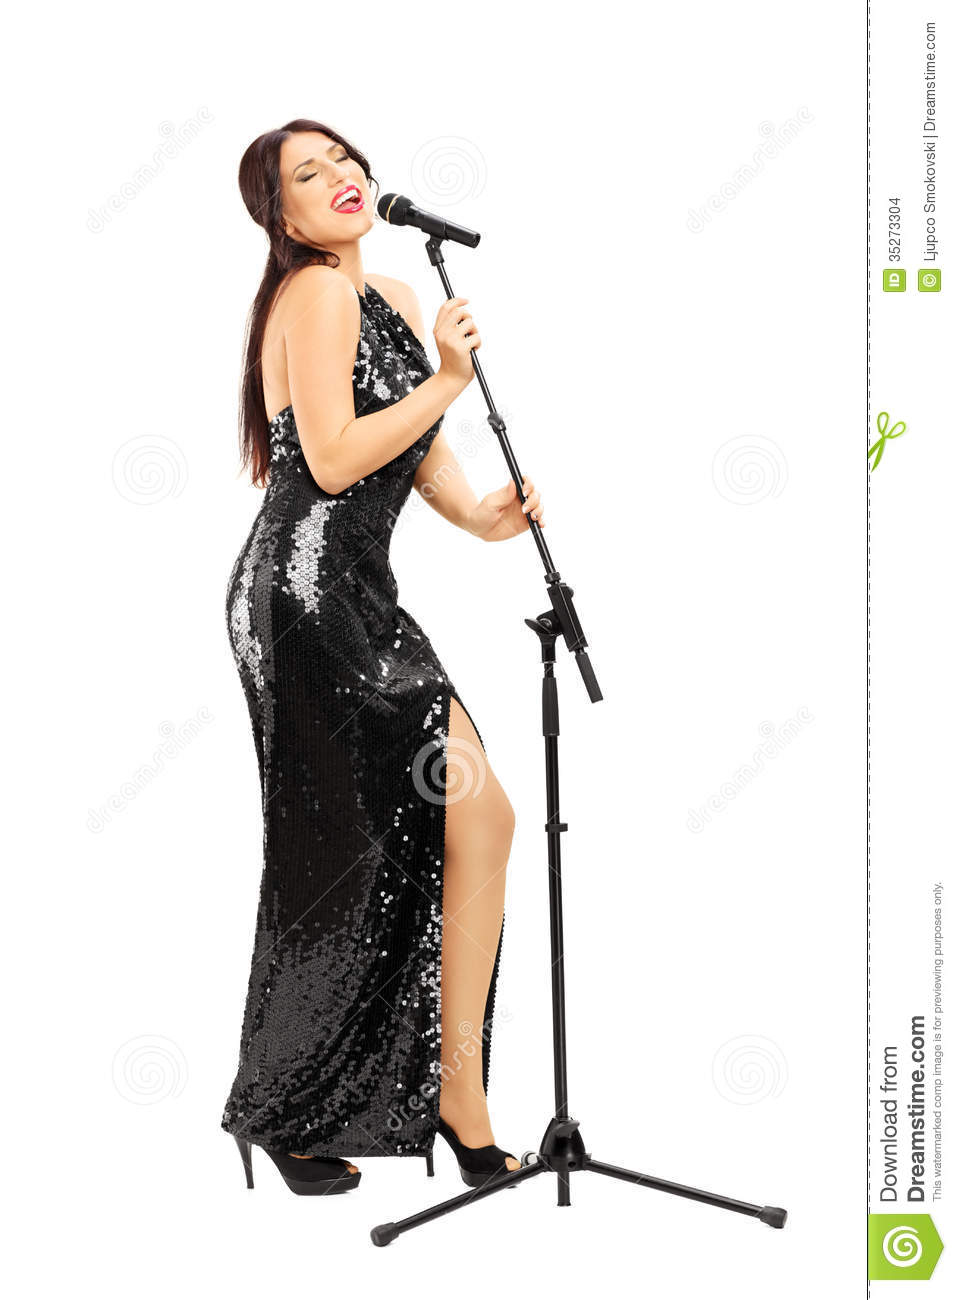 full length portrait of a young woman in black dress